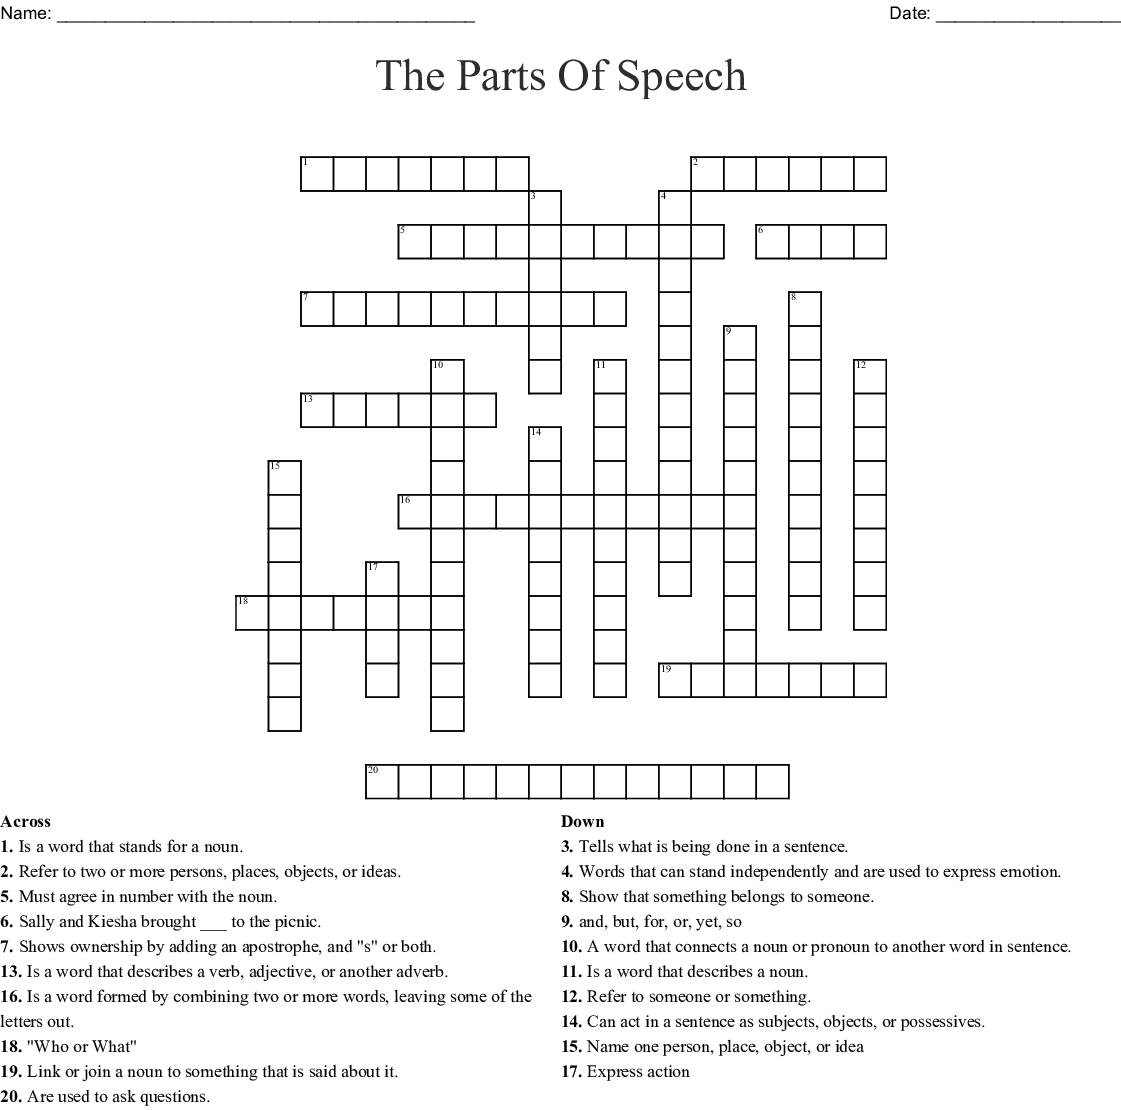 Parts Of Speech Crossword Puzzle